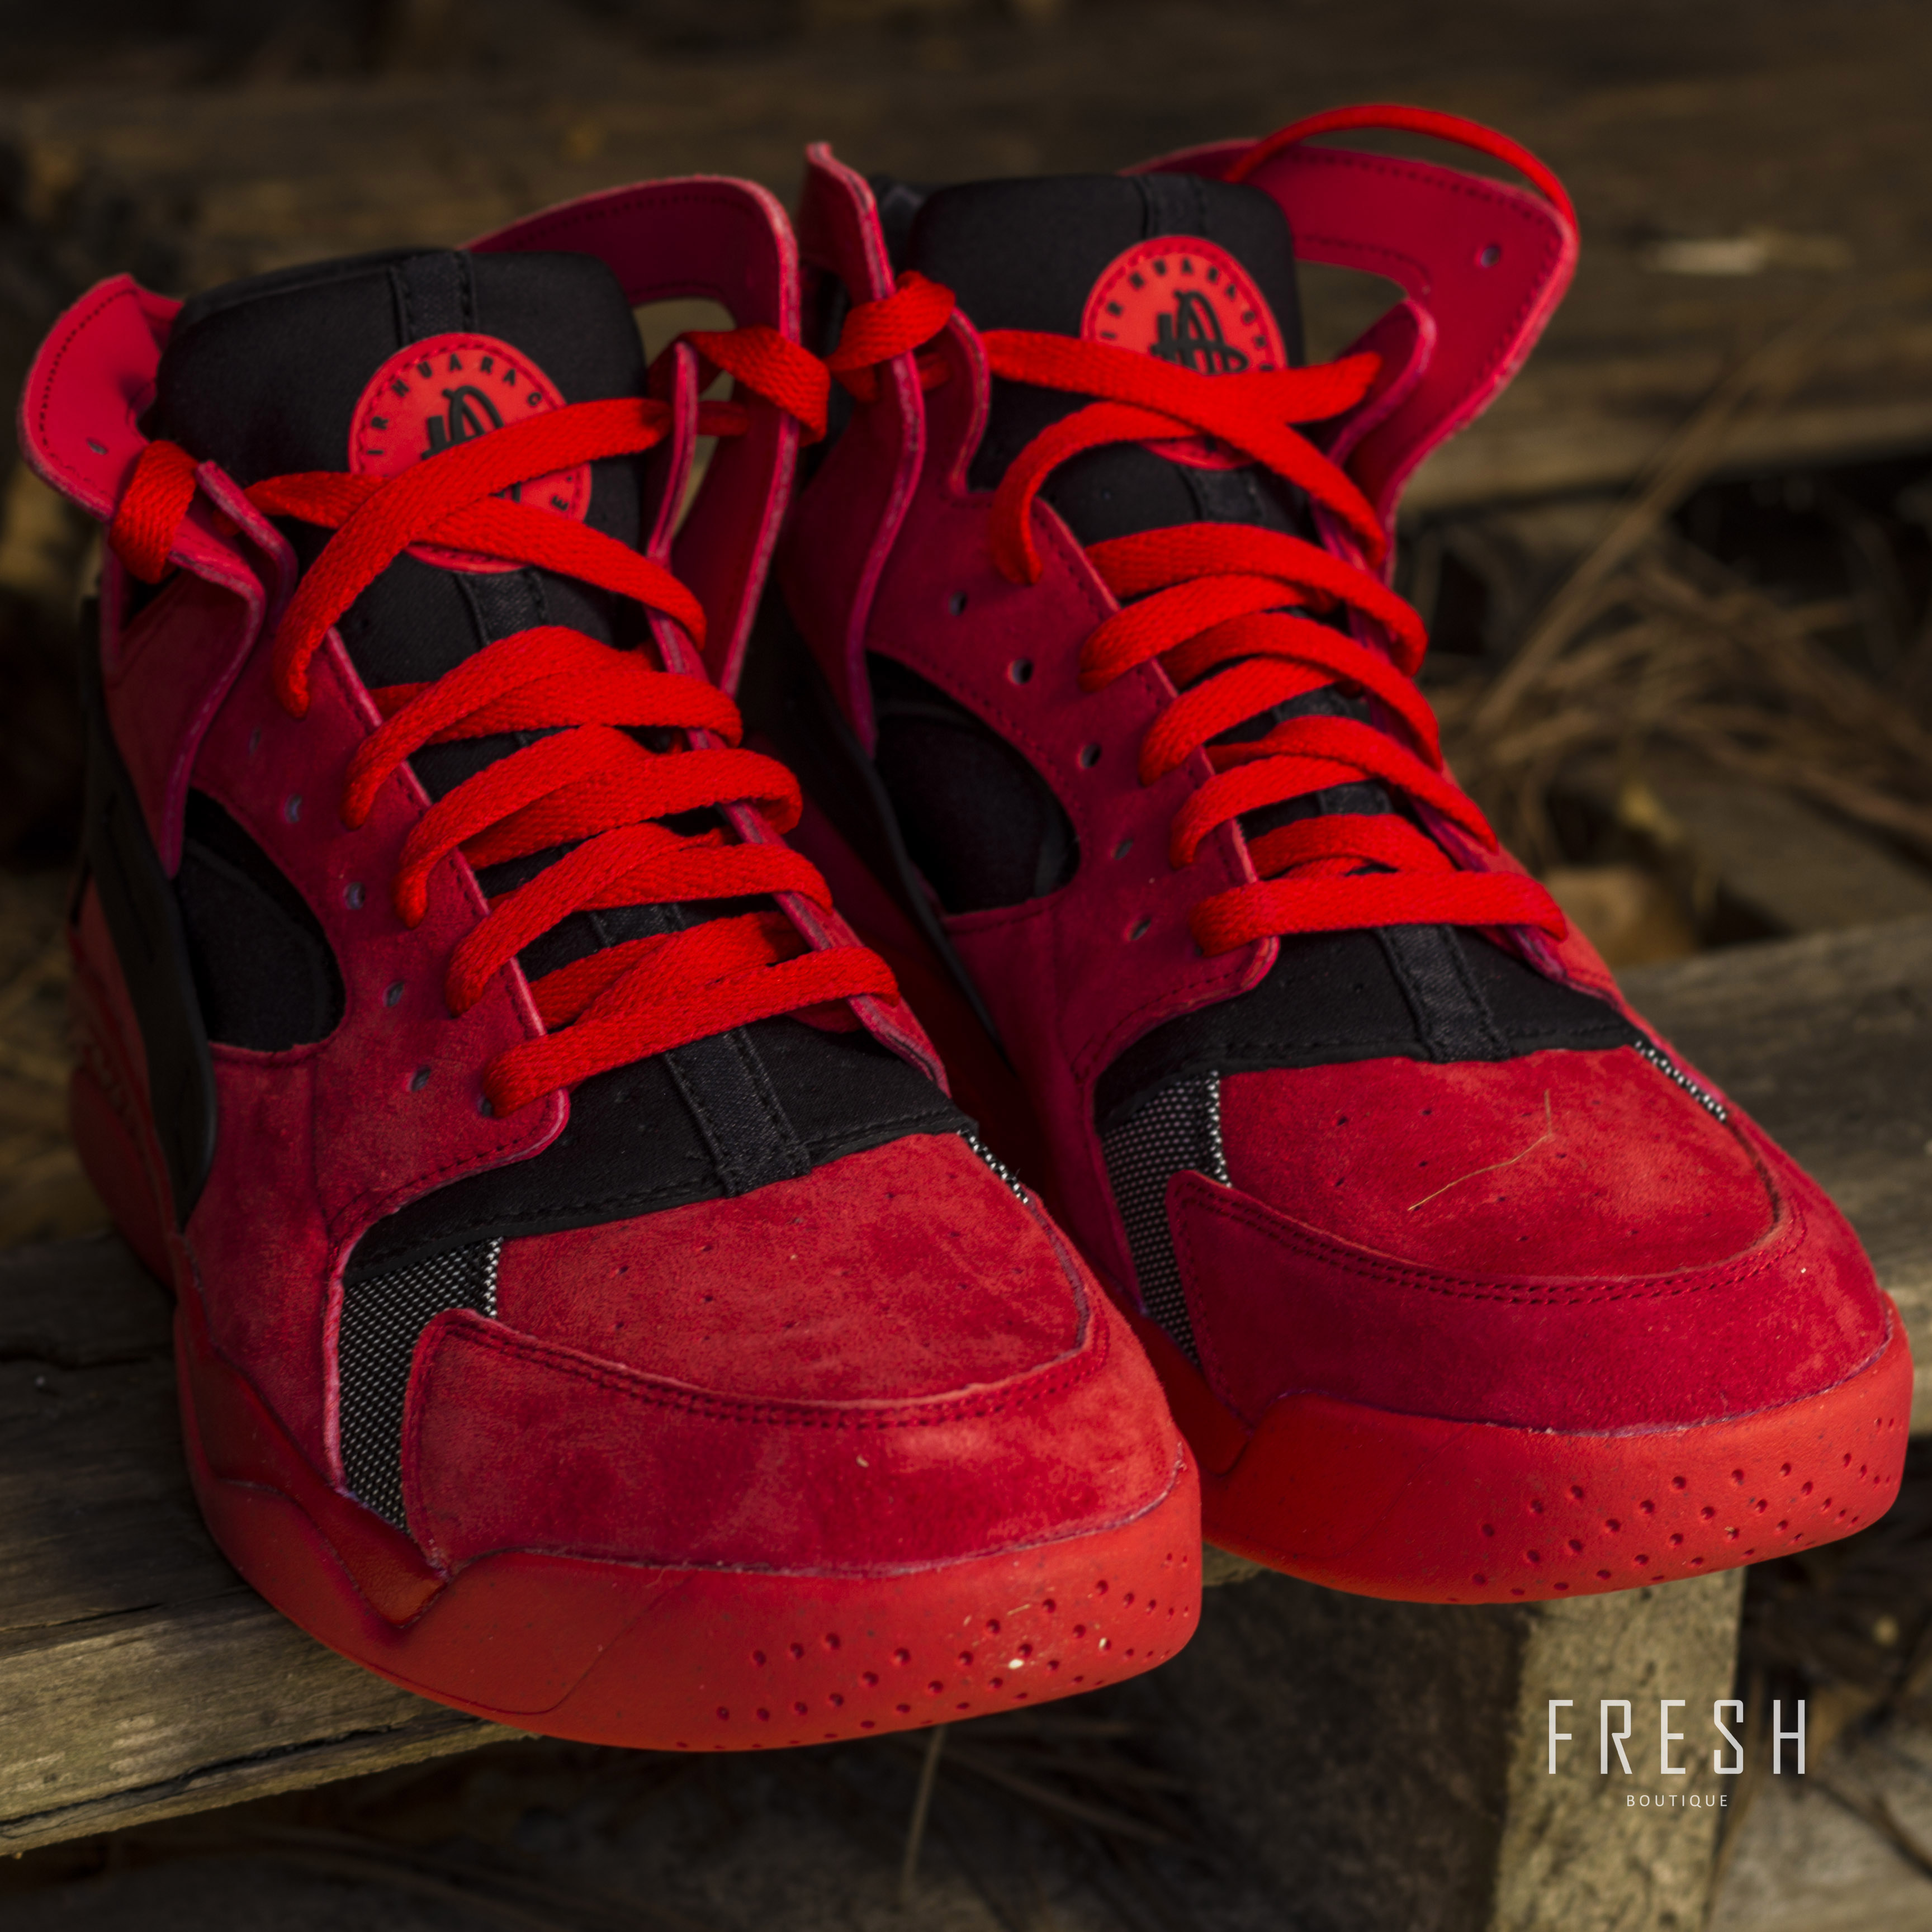 nike air flight huarache red suede fresh sneaker boutique. Black Bedroom Furniture Sets. Home Design Ideas